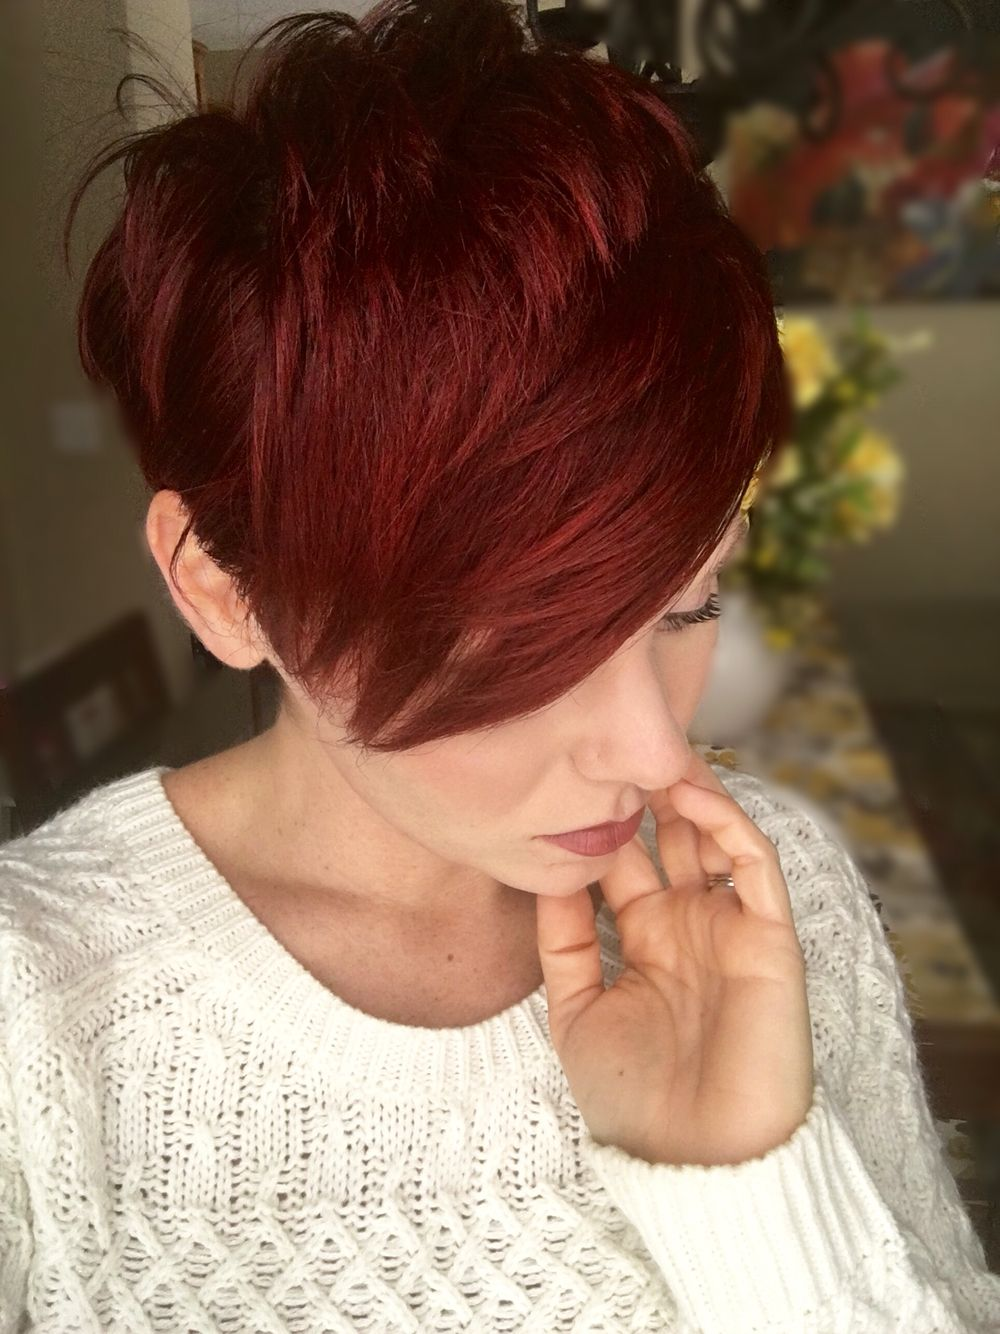 Red pixie cut hair styles pinterest red pixie cuts red pixie